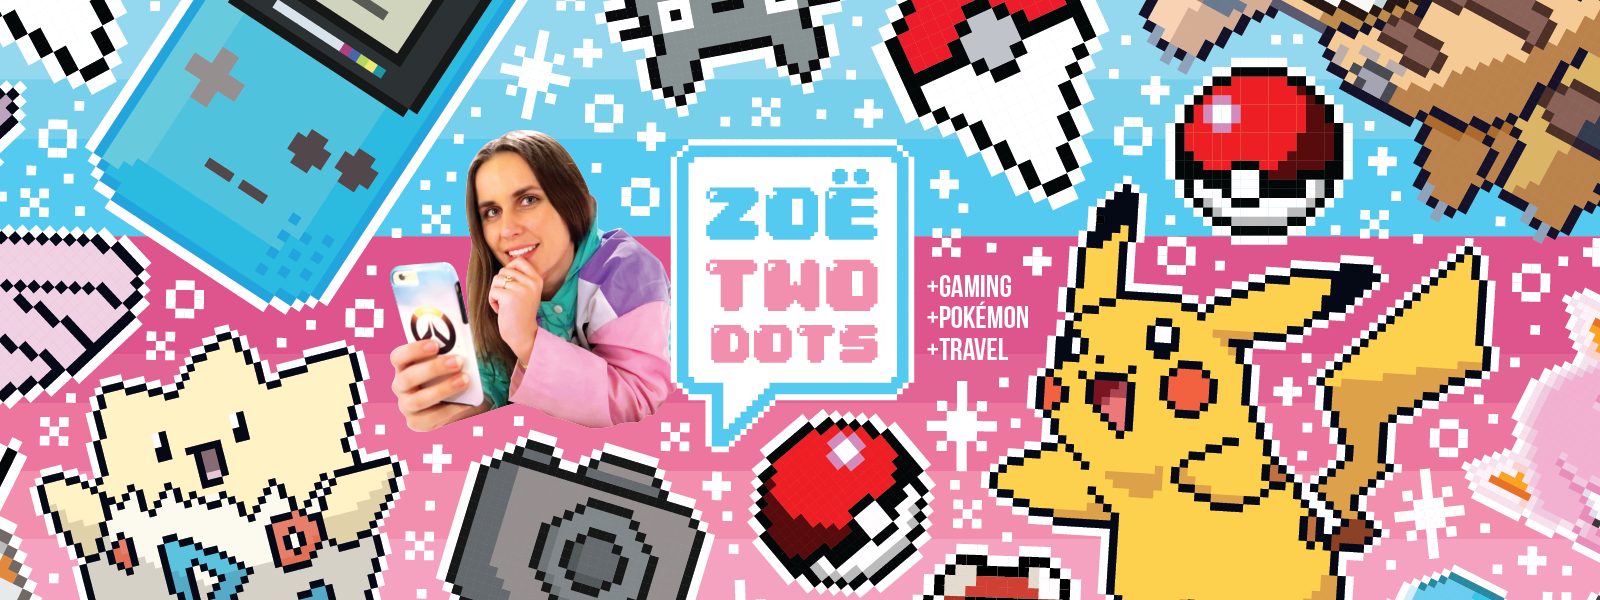 Zoe Two Dots Official Merch on Crowdmade